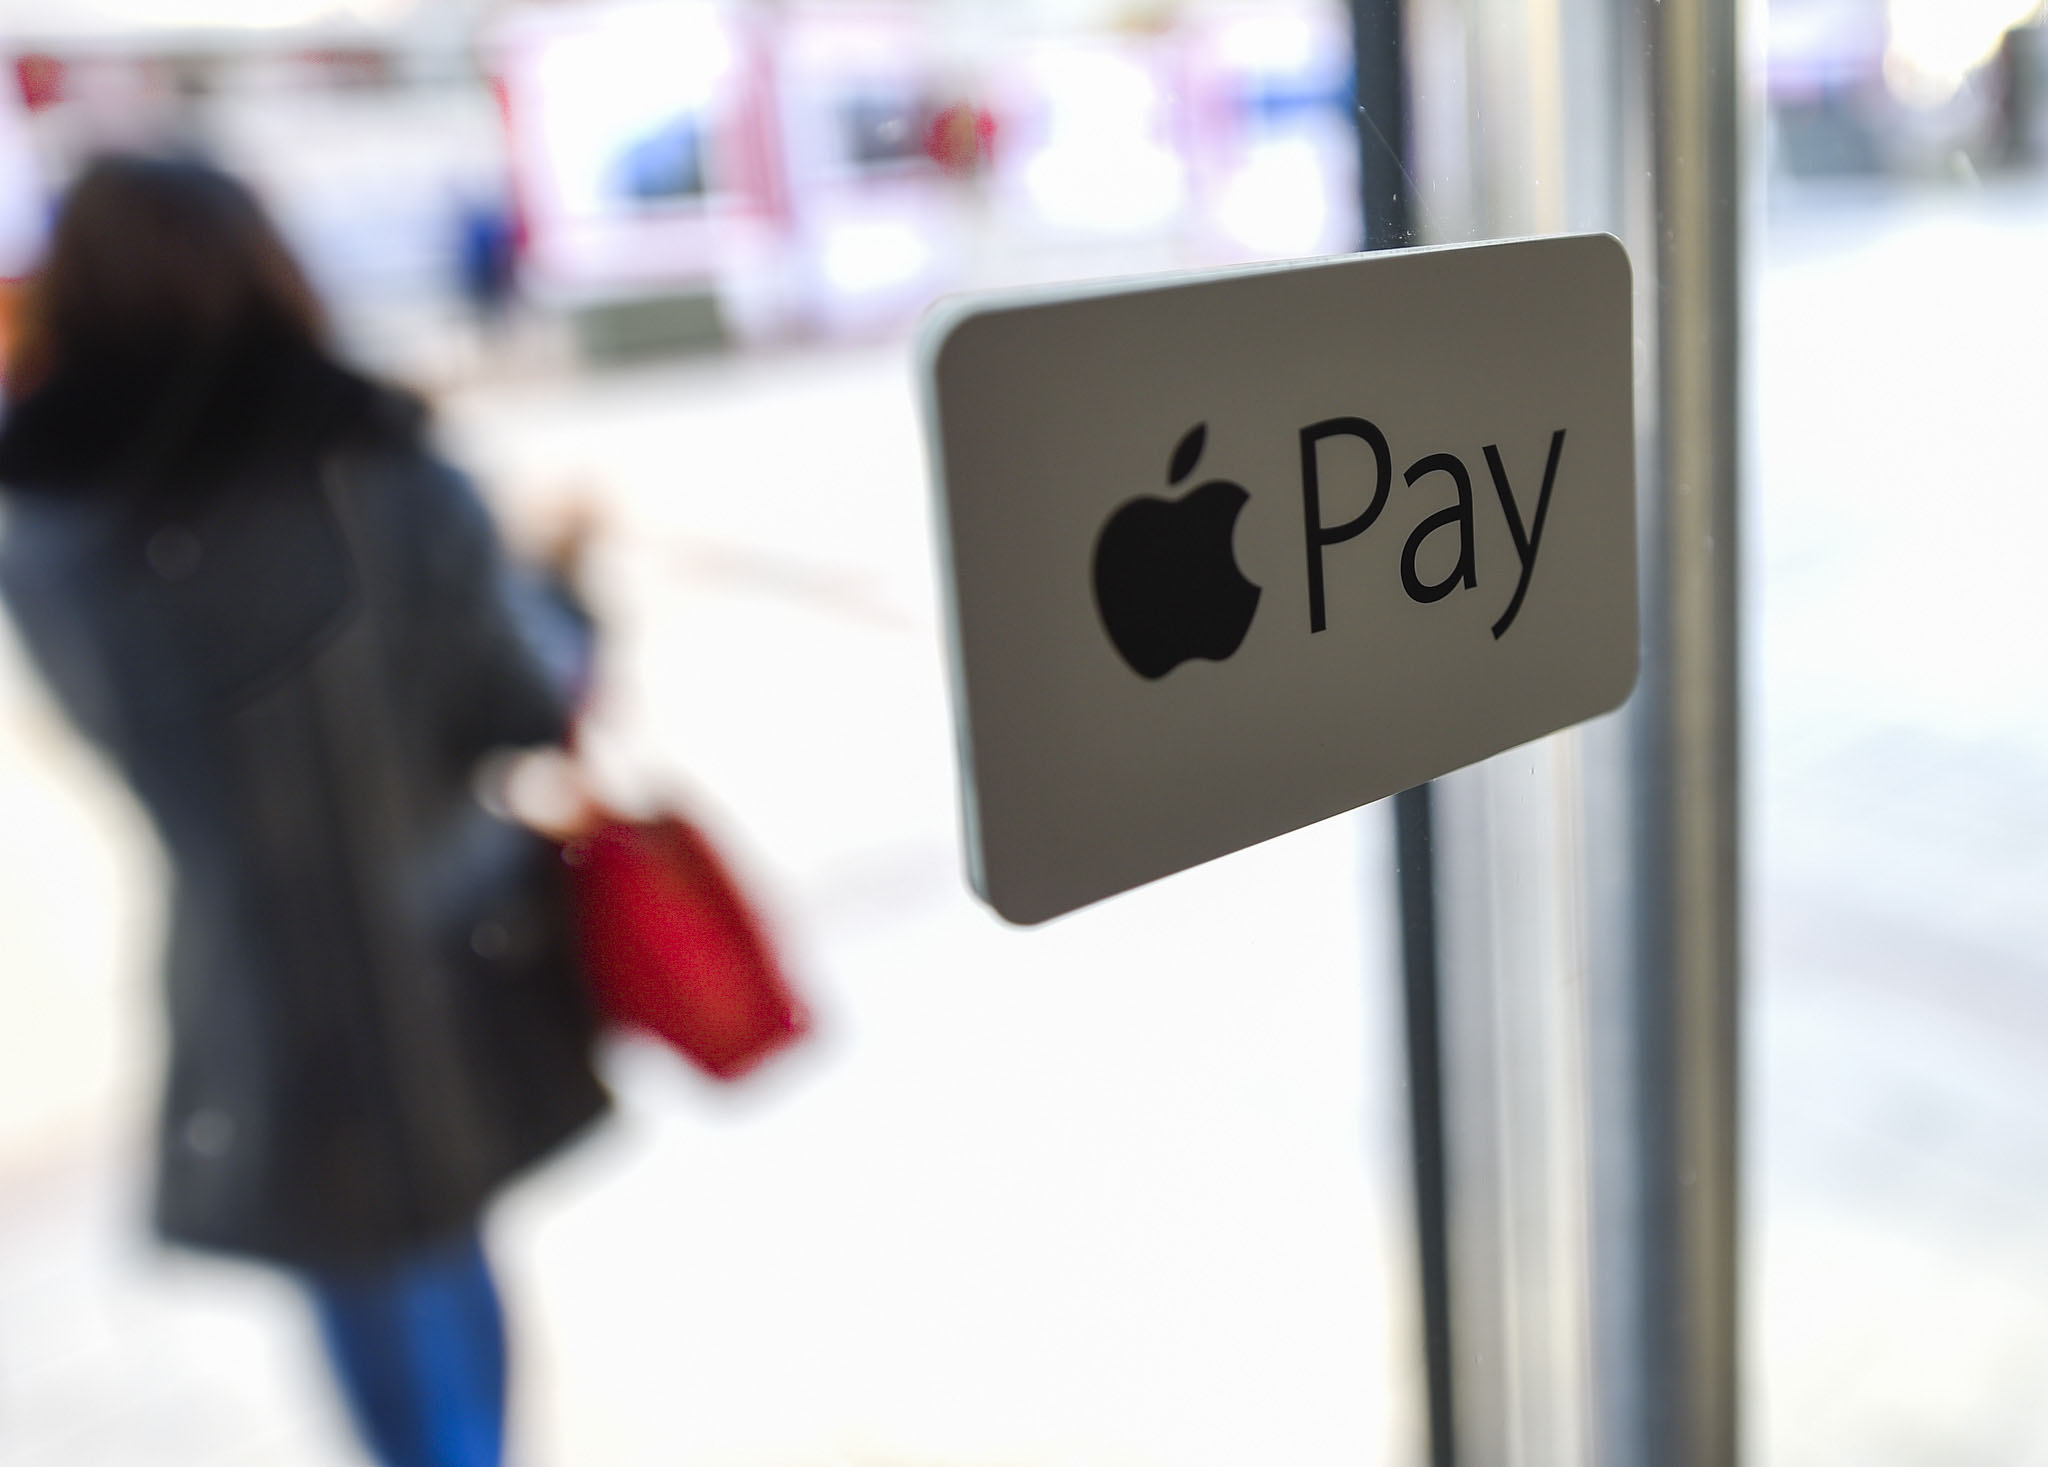 CIB Expands Use Of Apple Pay In Hungary